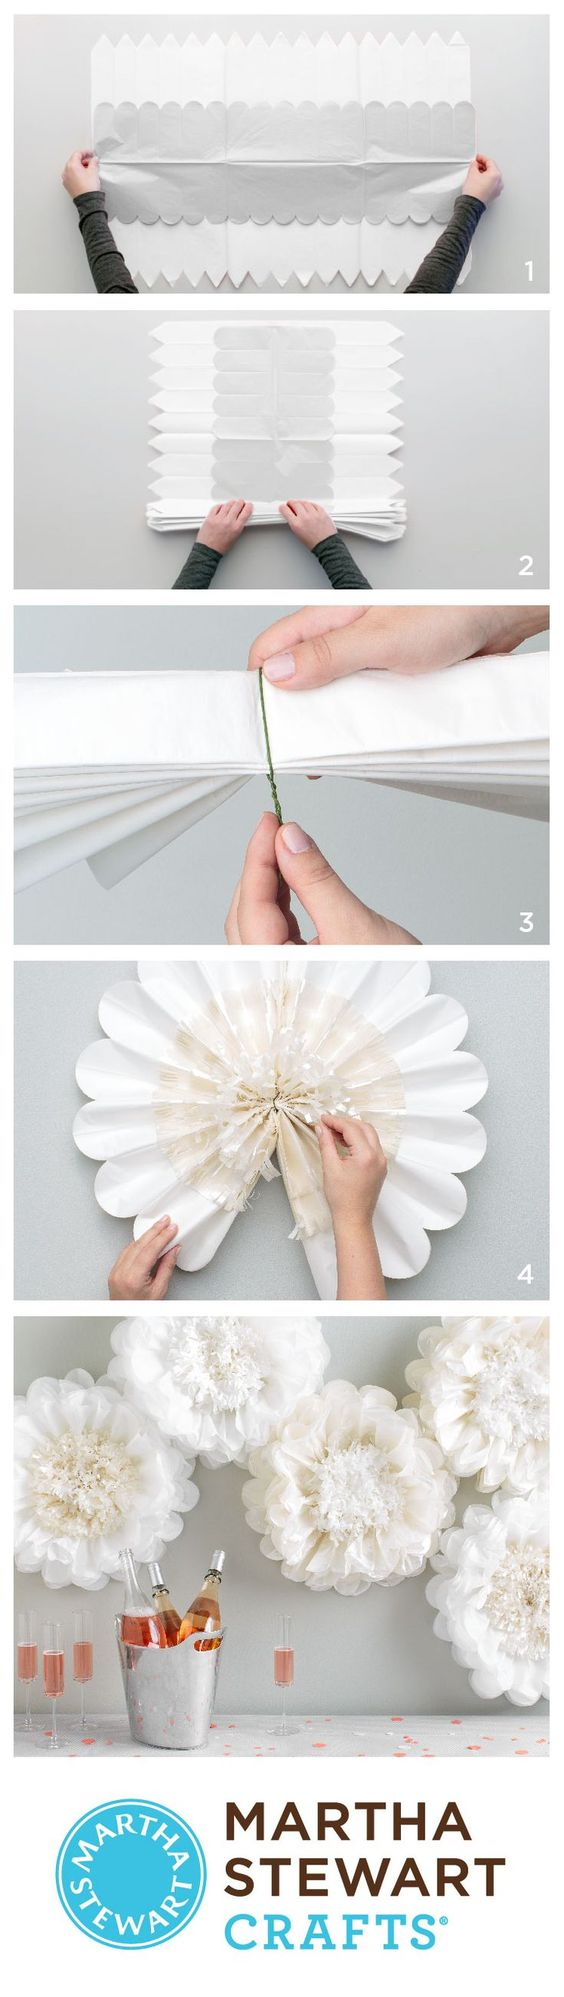 how to make tissue paper flowers martha stewart Making martha stewart i want to share with the world so everyone's poms are as pretty as martha how to make tissue paper rose flower with.